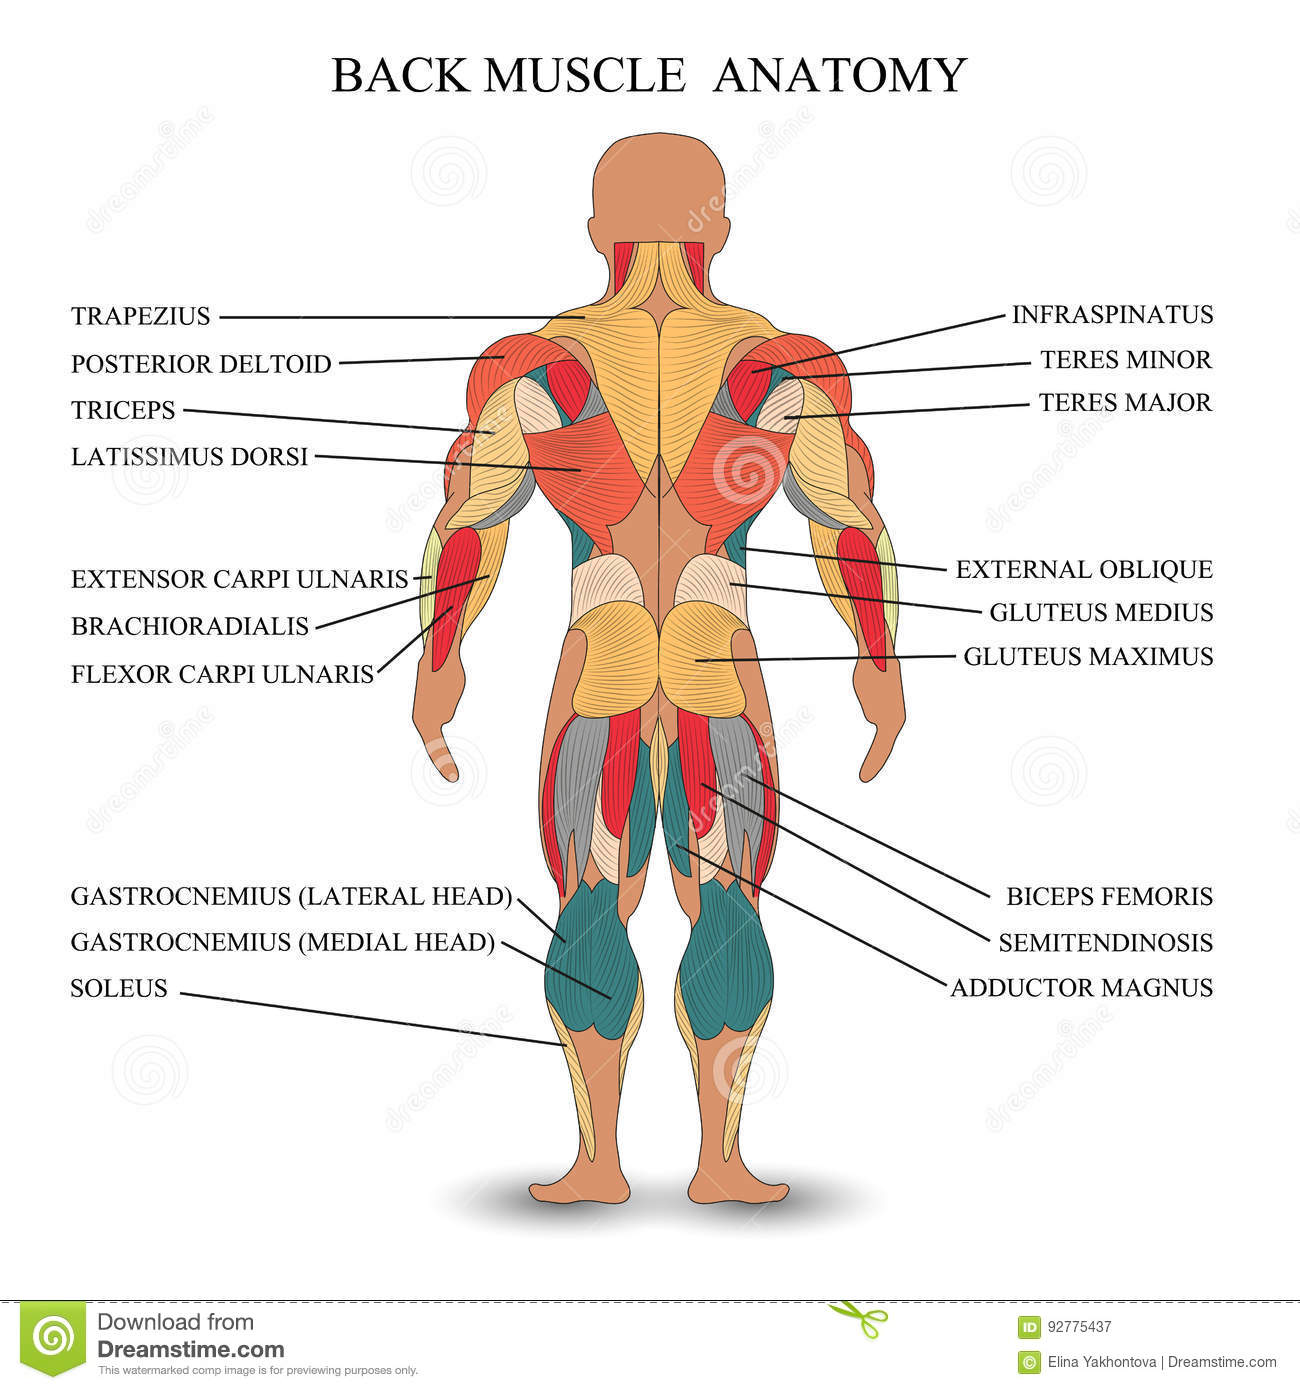 Anatomy Of Human Muscles In The Back A Template For Medical